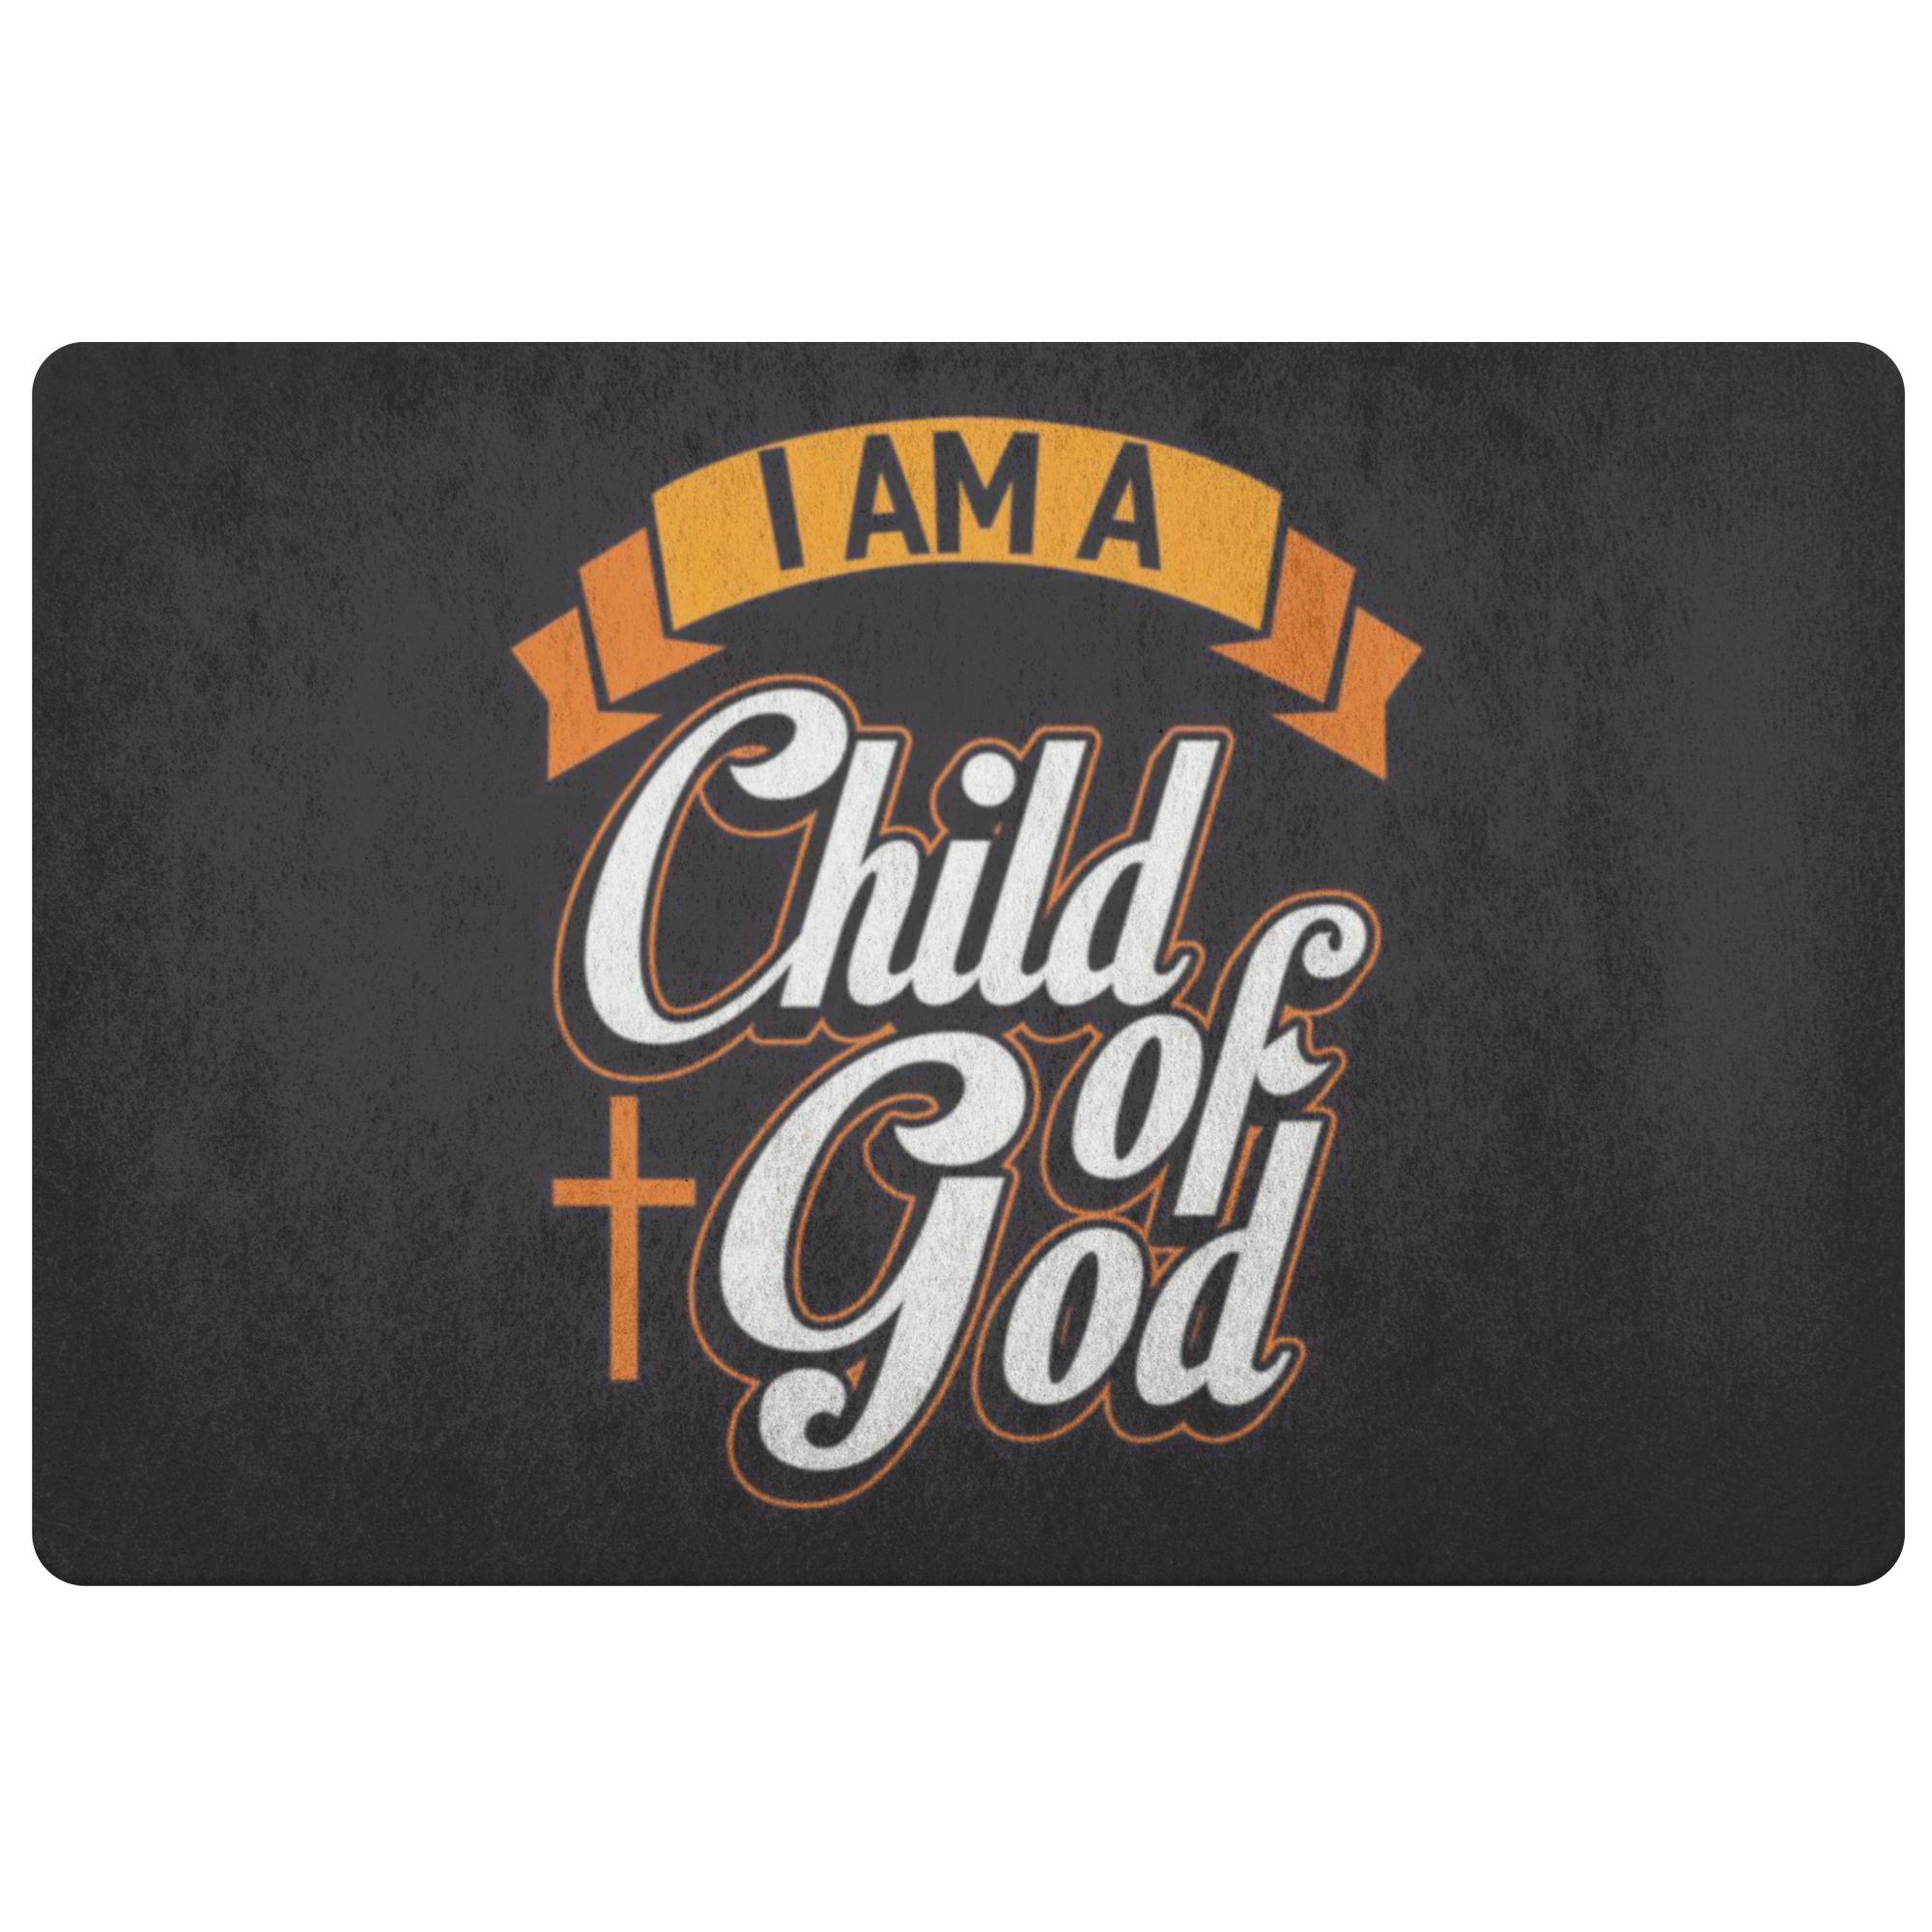 I Am A Child Of God 18X26 Door Mat Unique Christian Gift Ideas Religious Present-Doormat-Black-JoyHip.Com